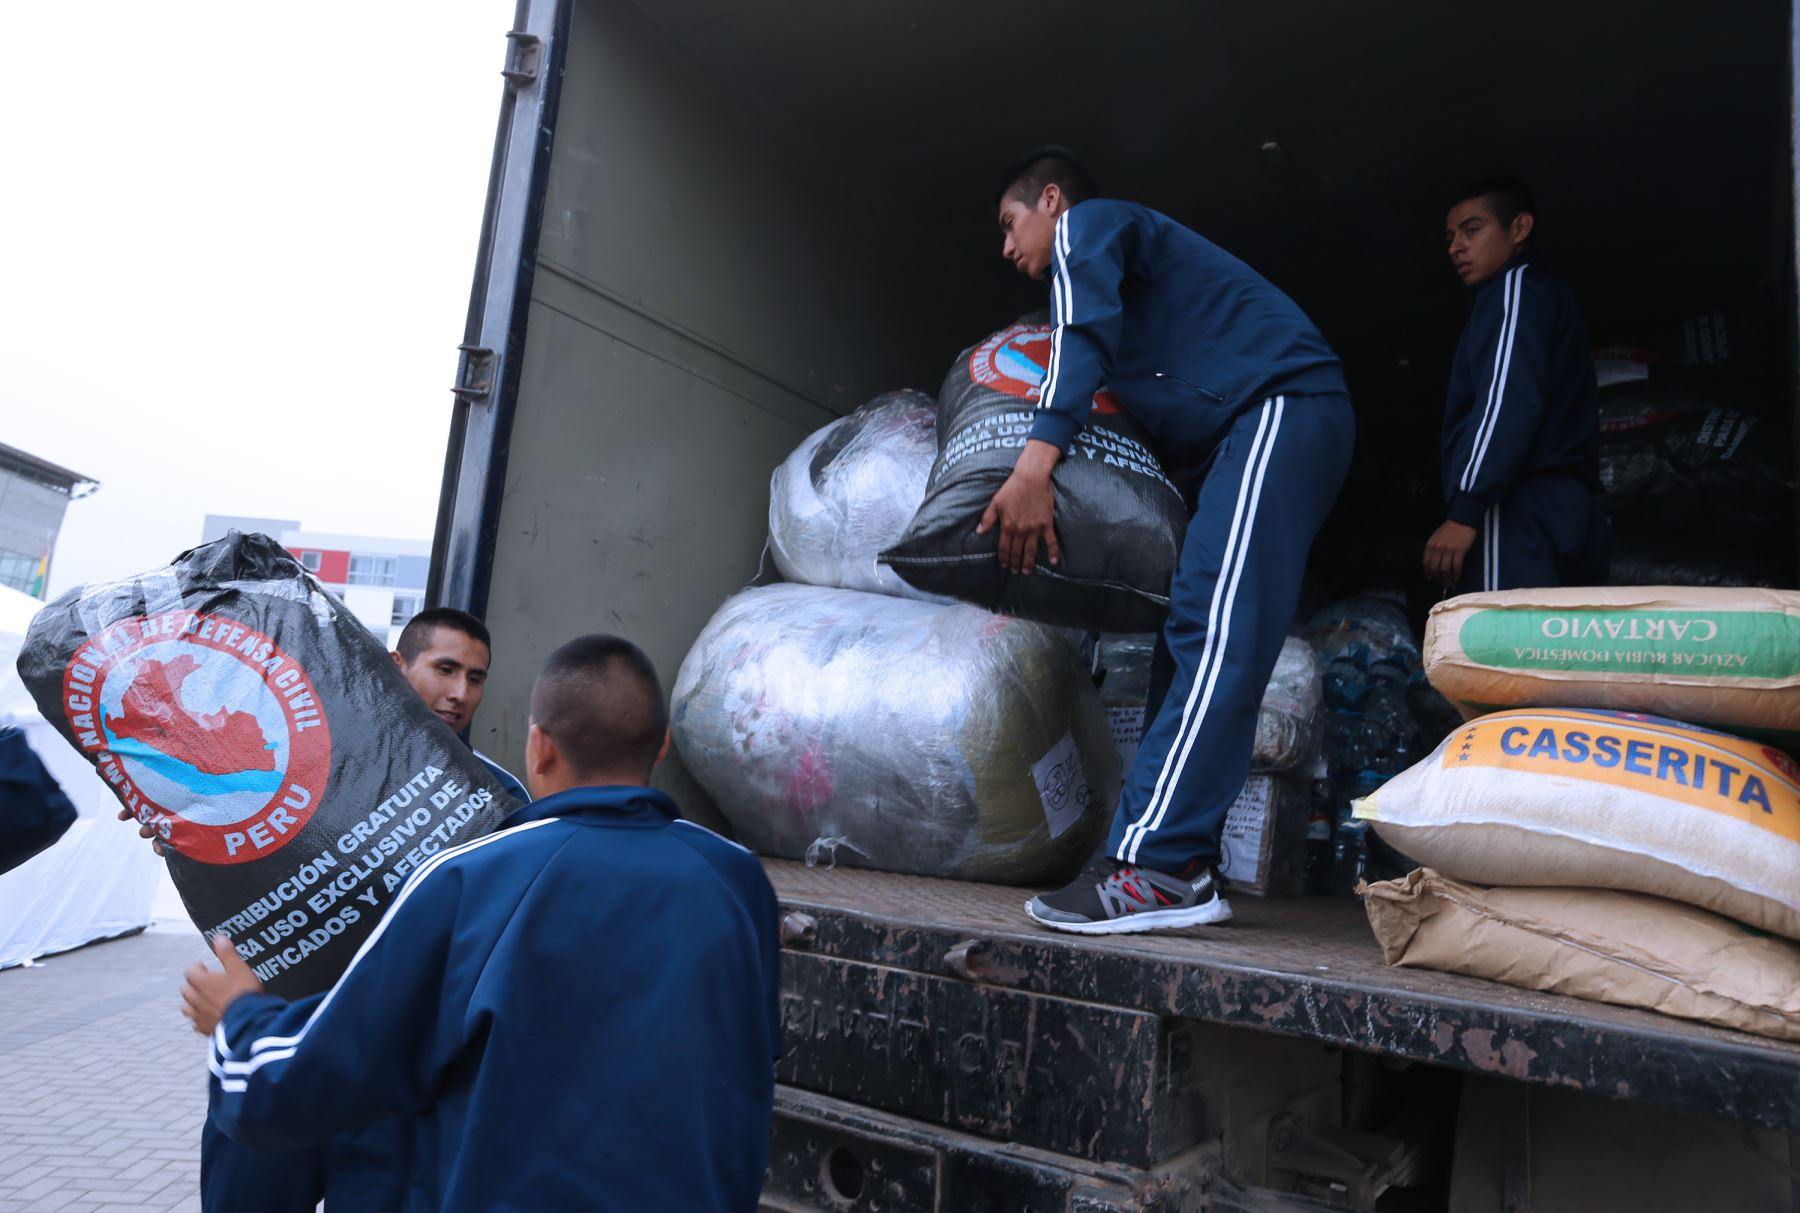 Peru: 8 tons of aid collected for torrential rain victims